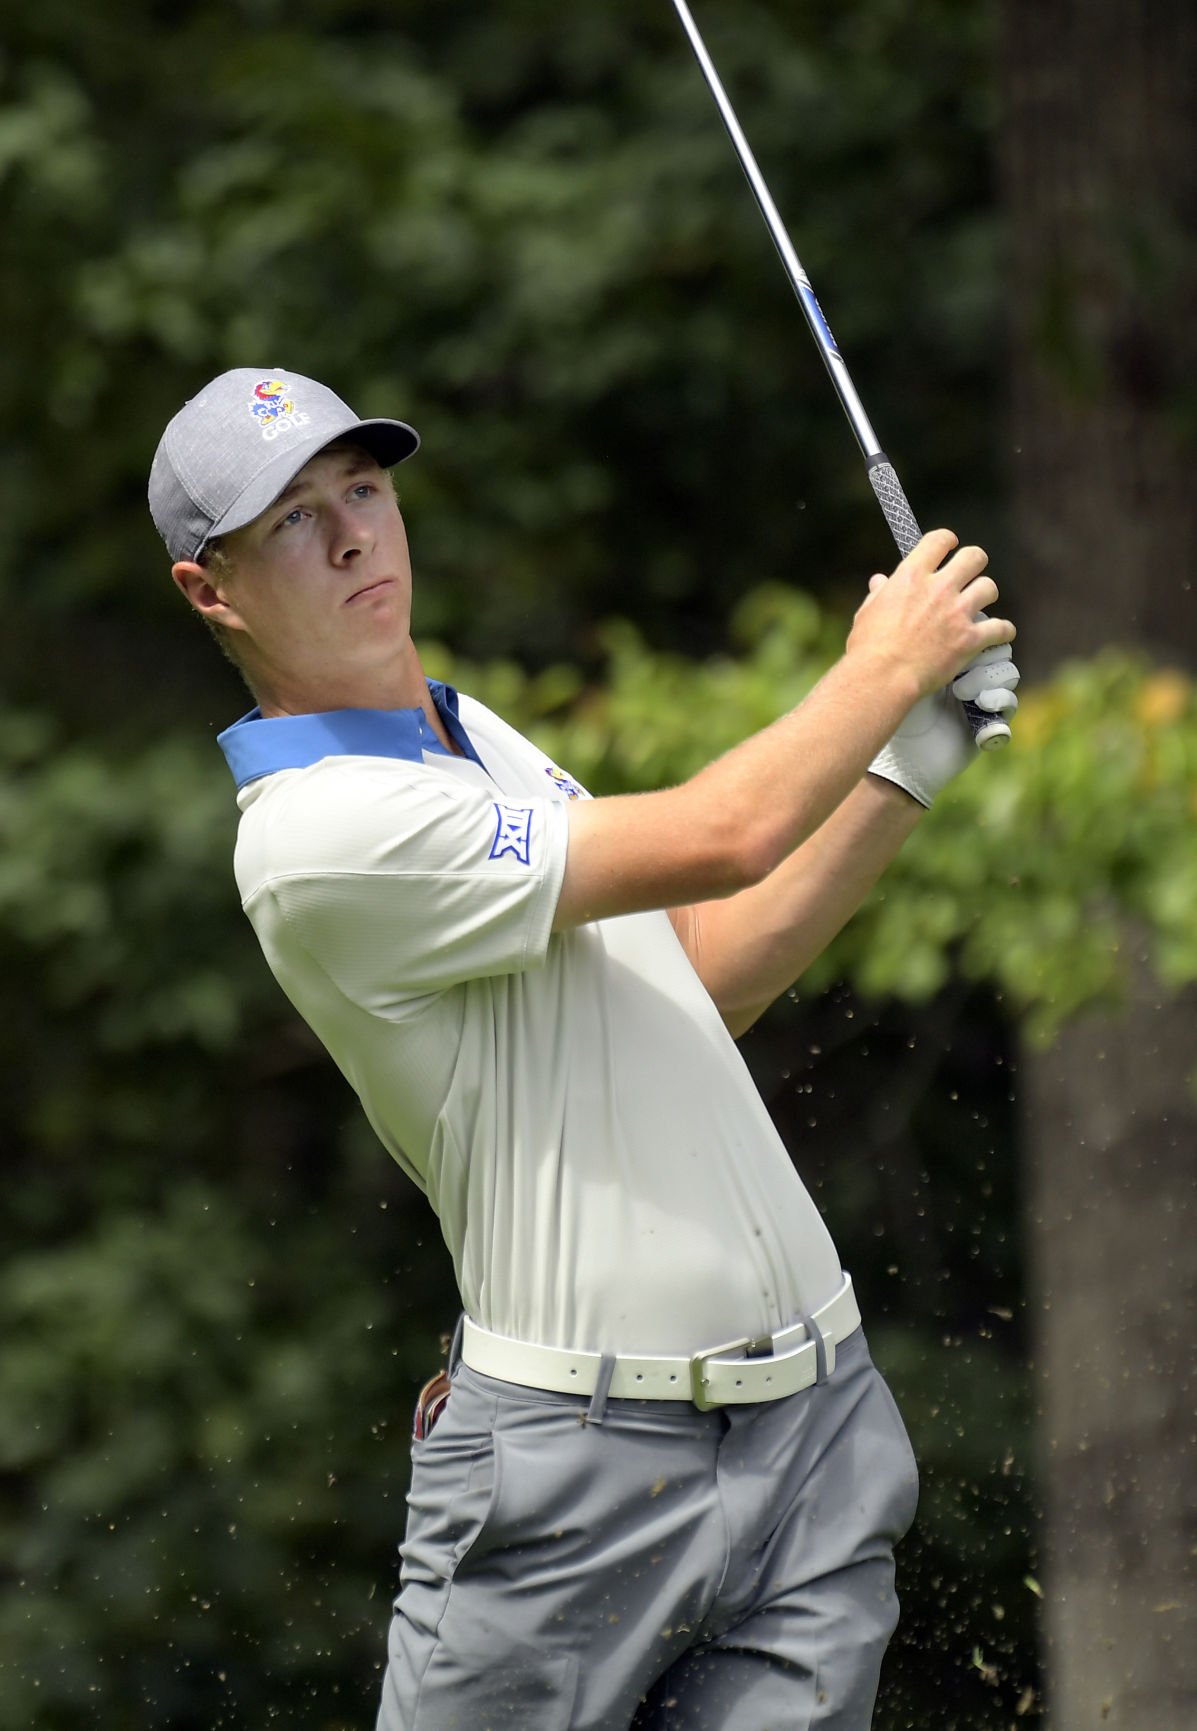 Harry Hillier finishes through on his swing